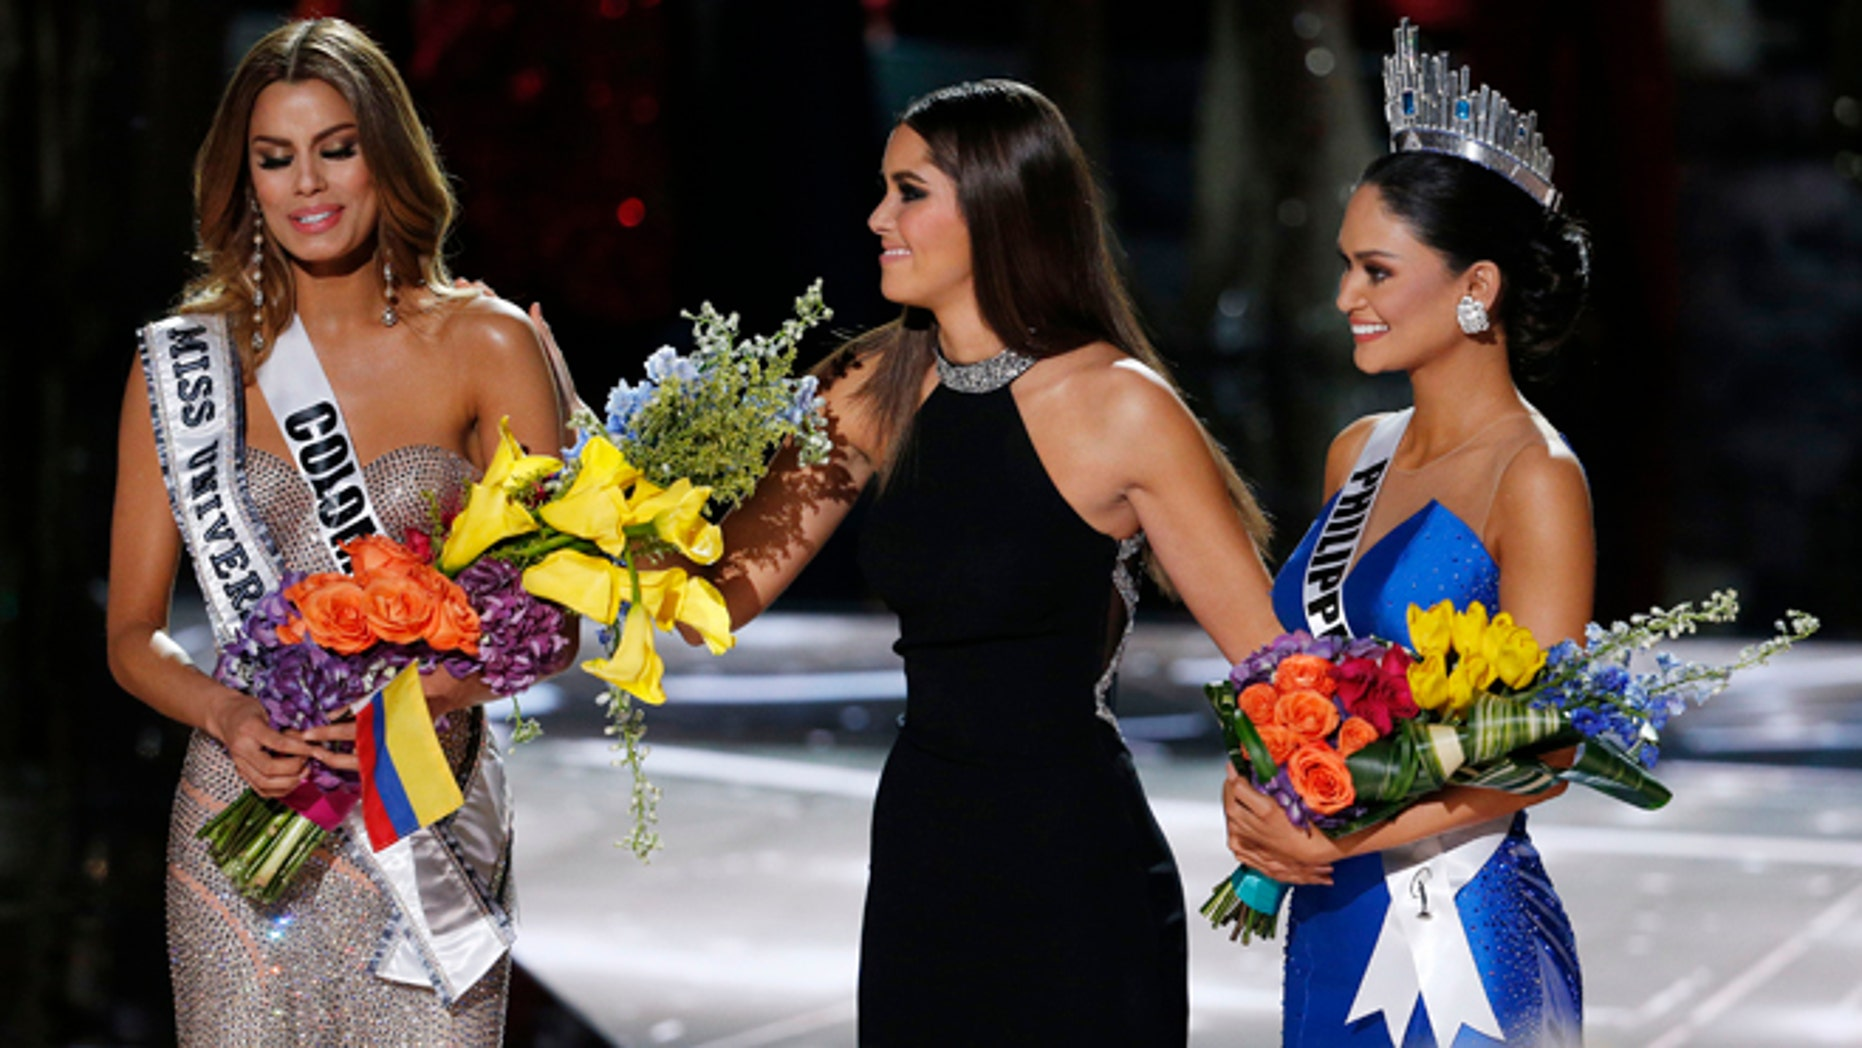 Former Miss Universe Paulina Vega takes away the flowers and sash from Miss Colombia Ariadna Gutierrez before giving them to Miss Philippines Pia Alonzo Wurtzbach on Sunday, Dec. 20, 2015.